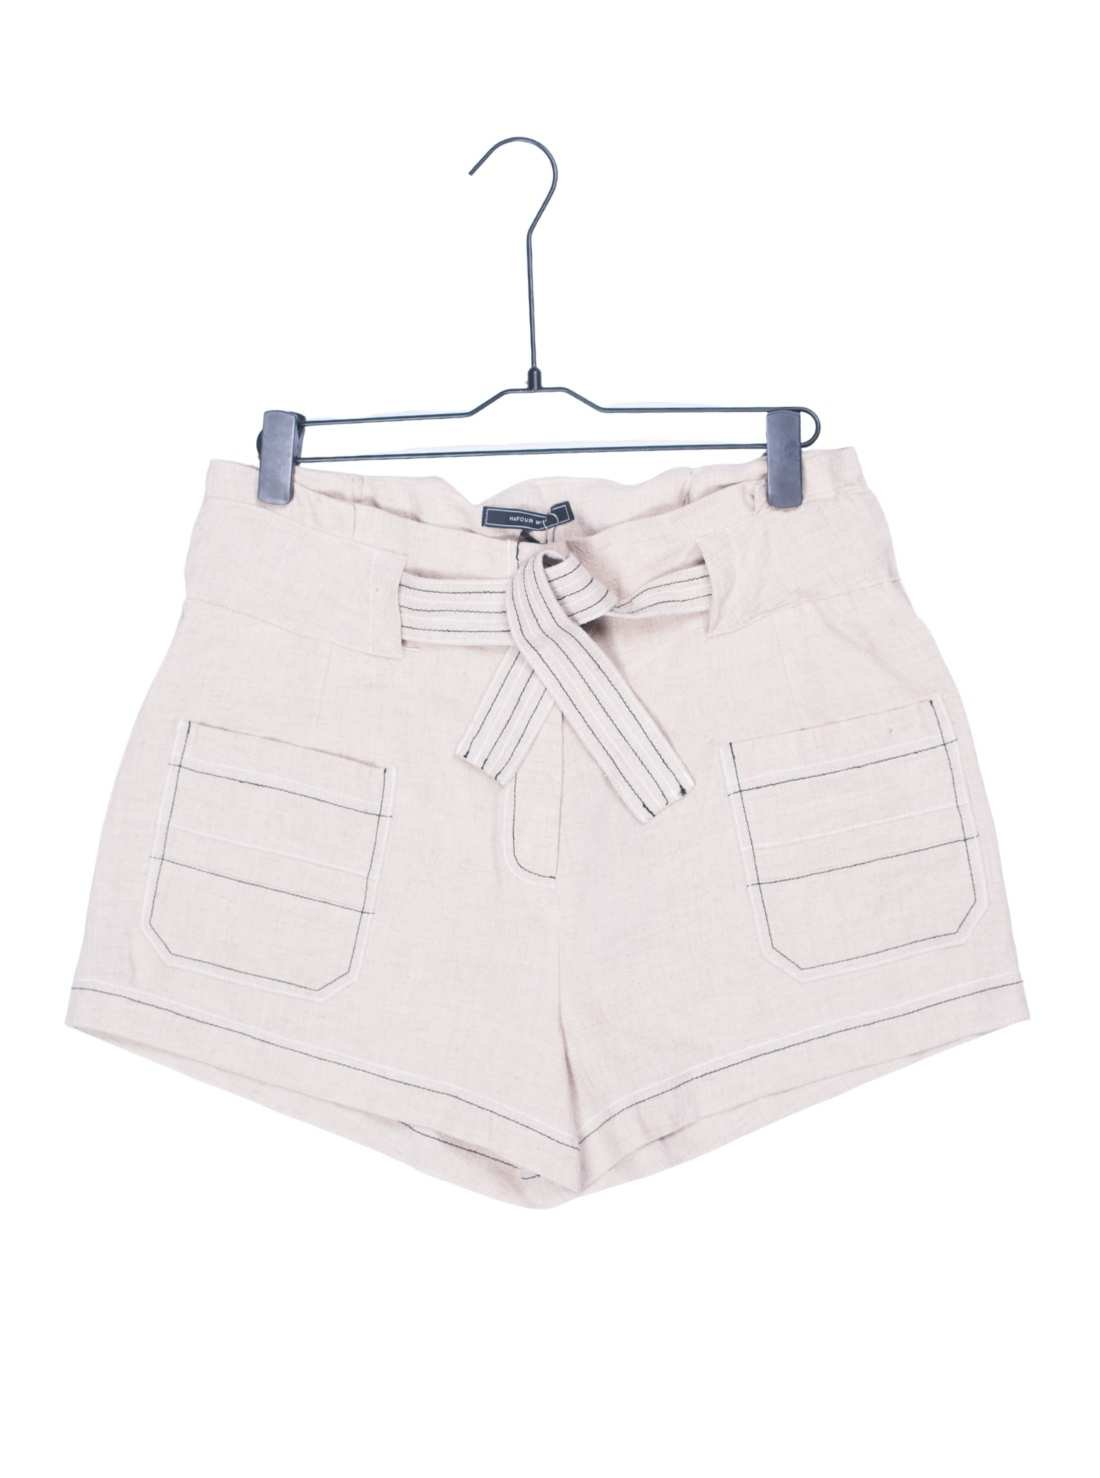 Ladies Cotton Linen Shorts in Nature color without dying